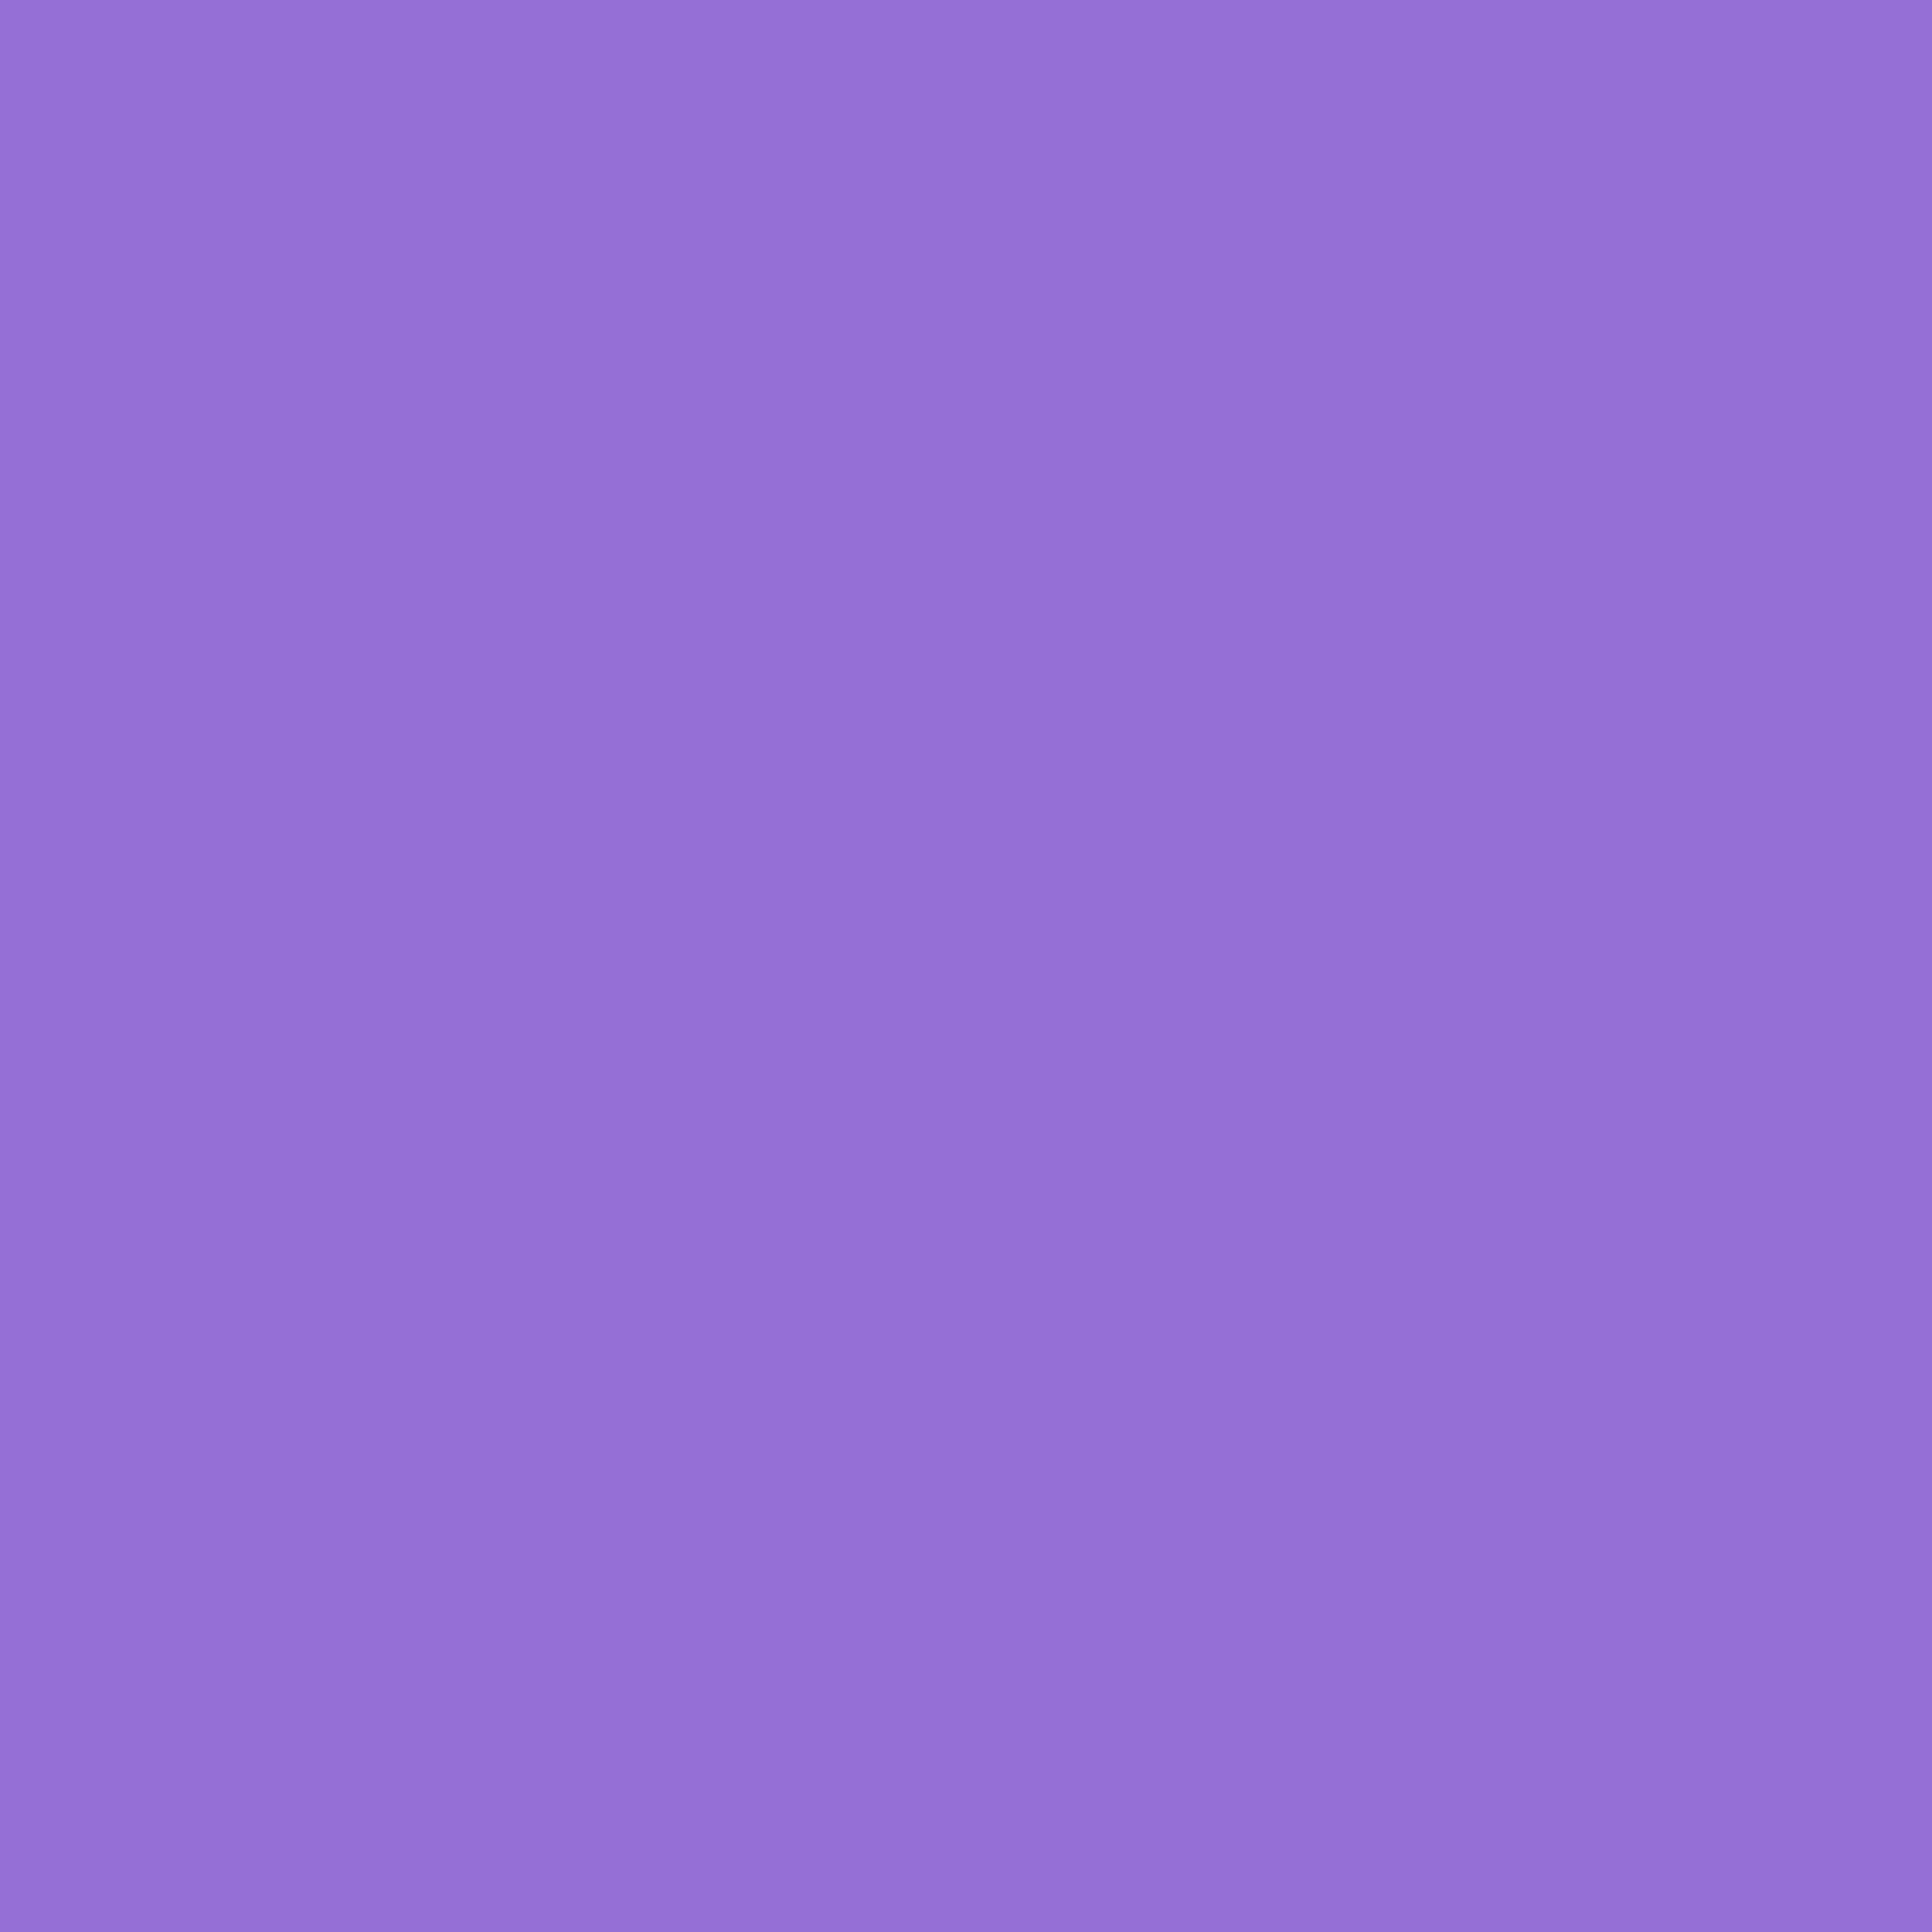 2048x2048 Dark Pastel Purple Solid Color Background